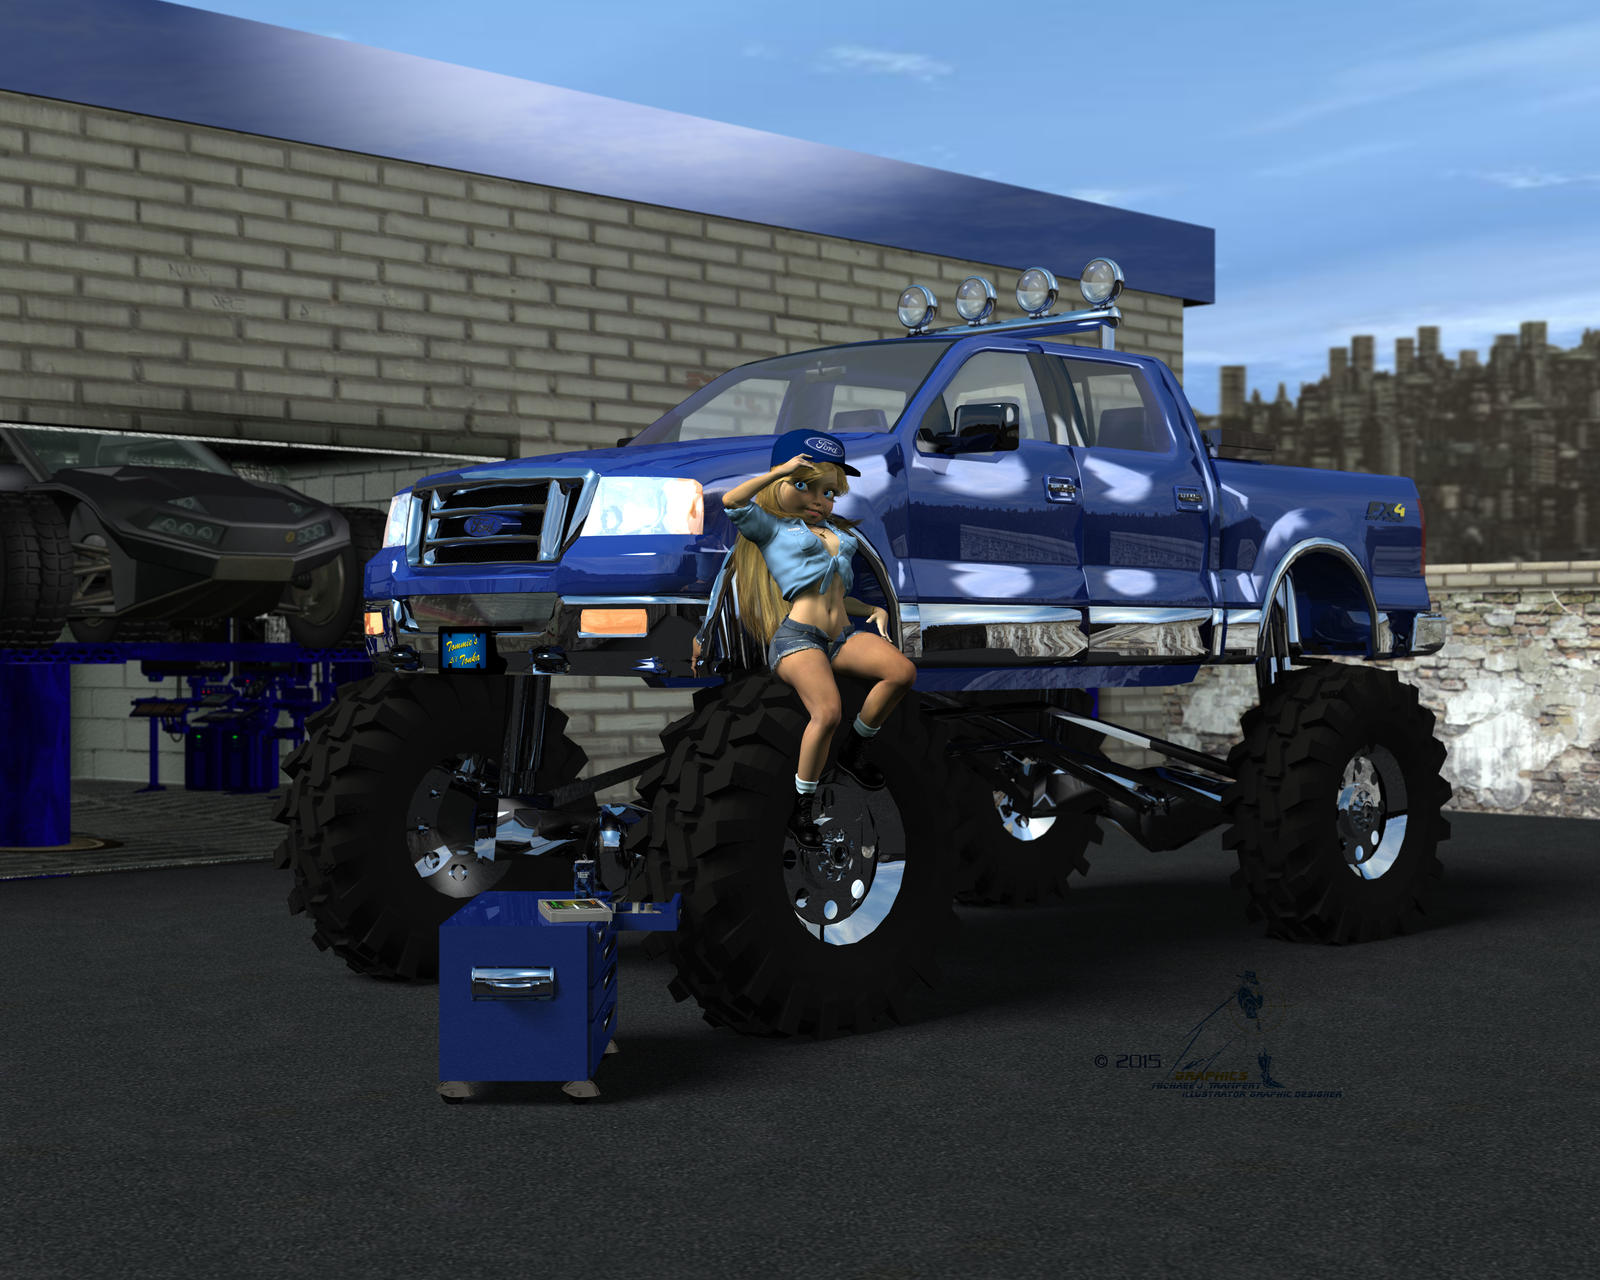 Little girl big truck by tramp graphics on deviantart little girl big truck by tramp graphics publicscrutiny Images